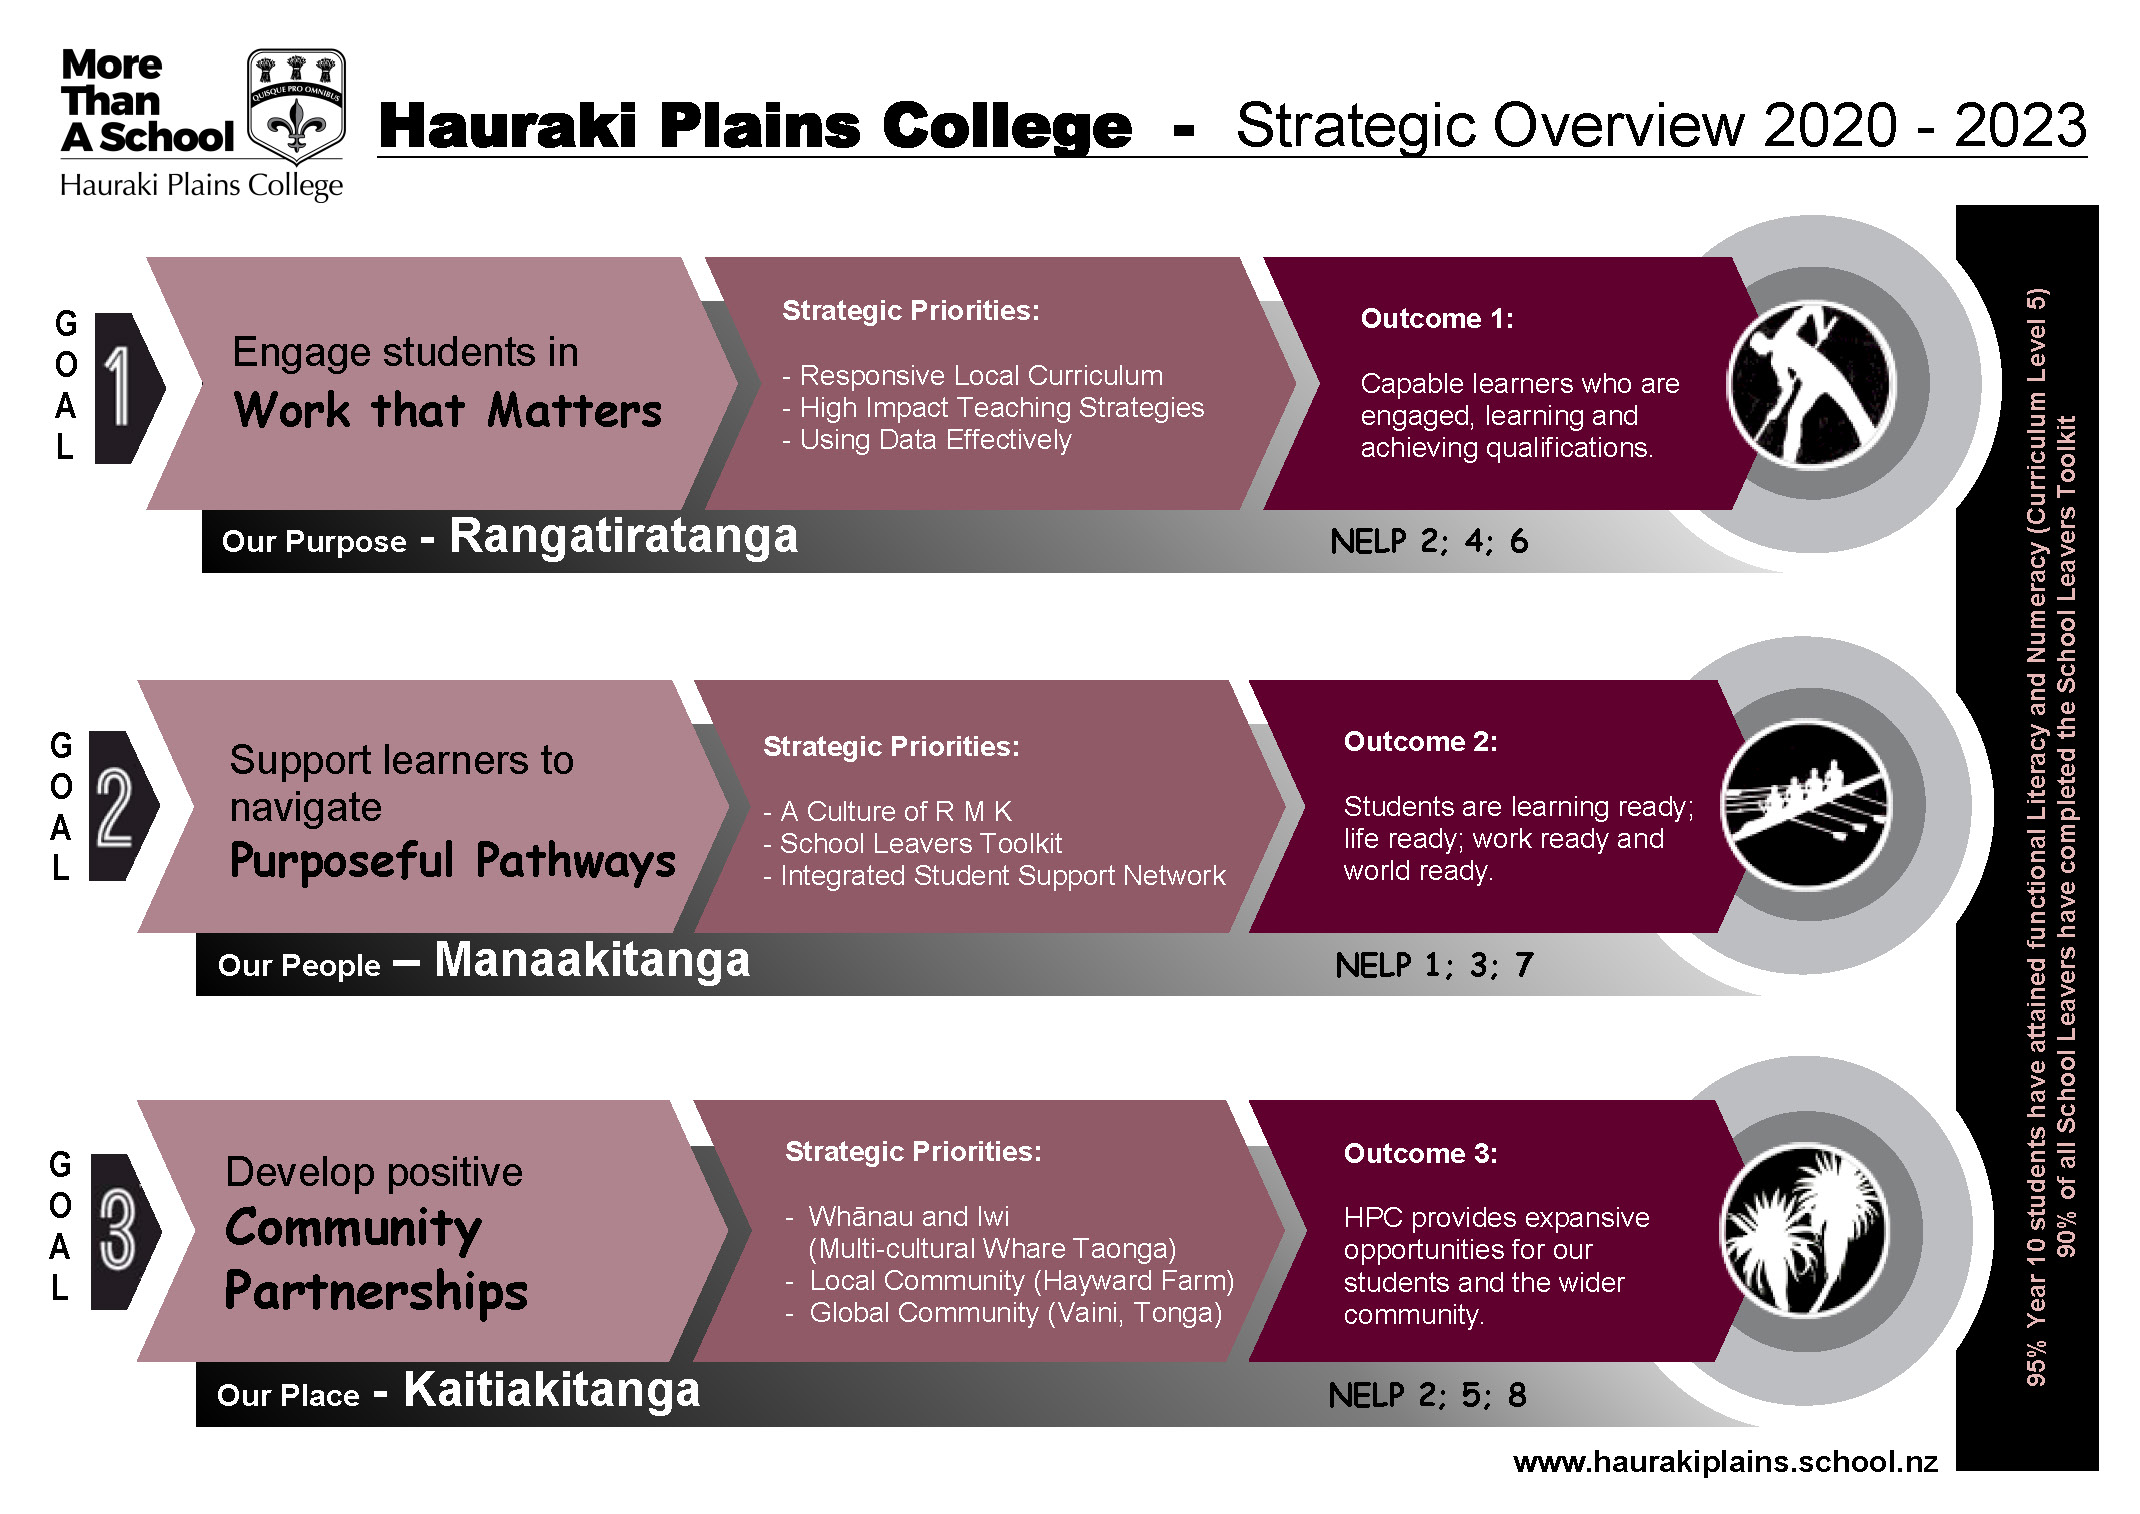 Strategic Overview 2021-2025